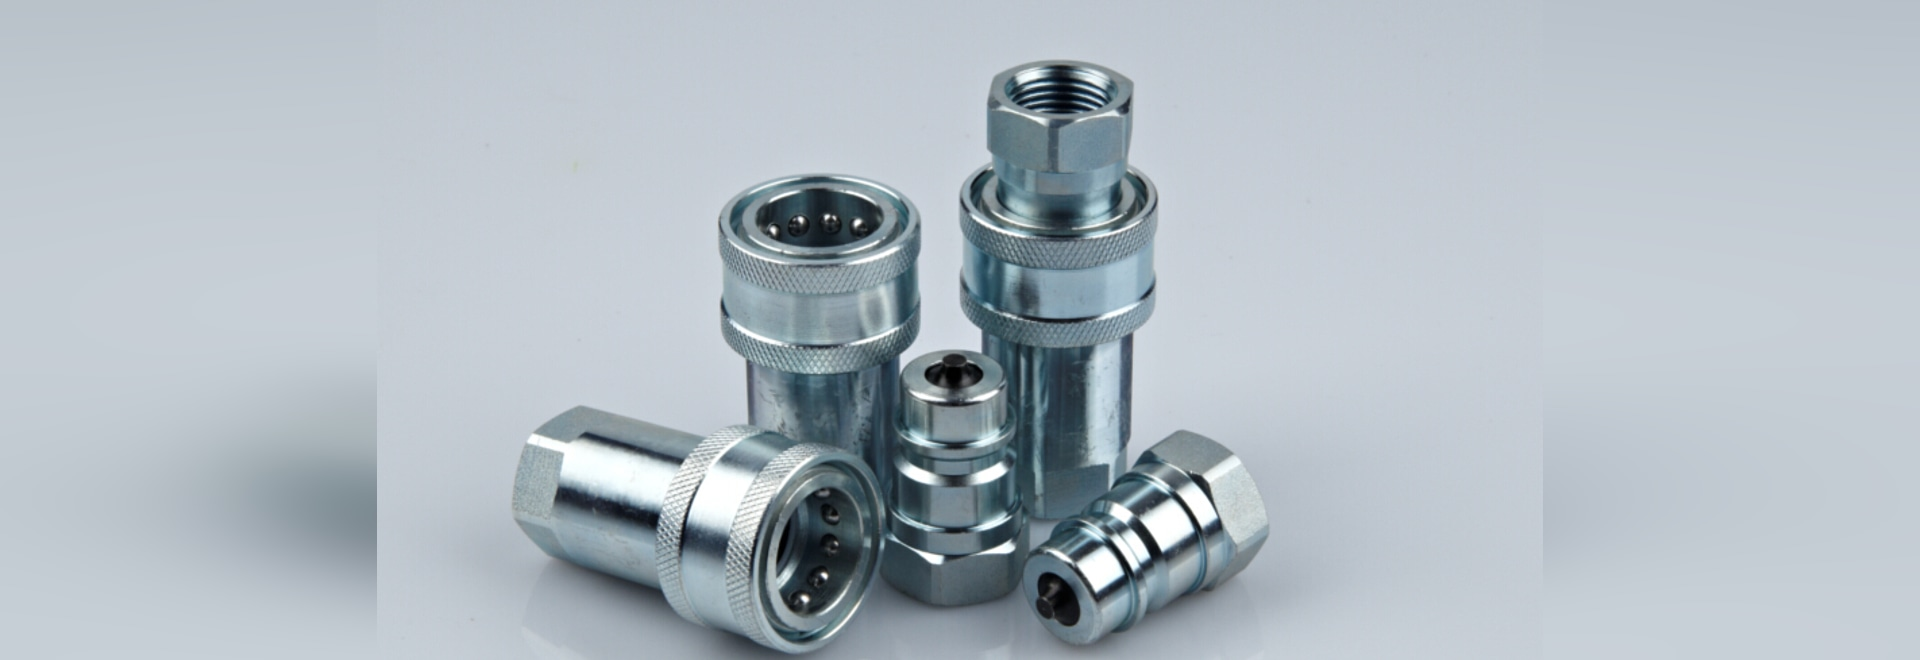 Threaded quick coupling/straight/steel/hydraulic